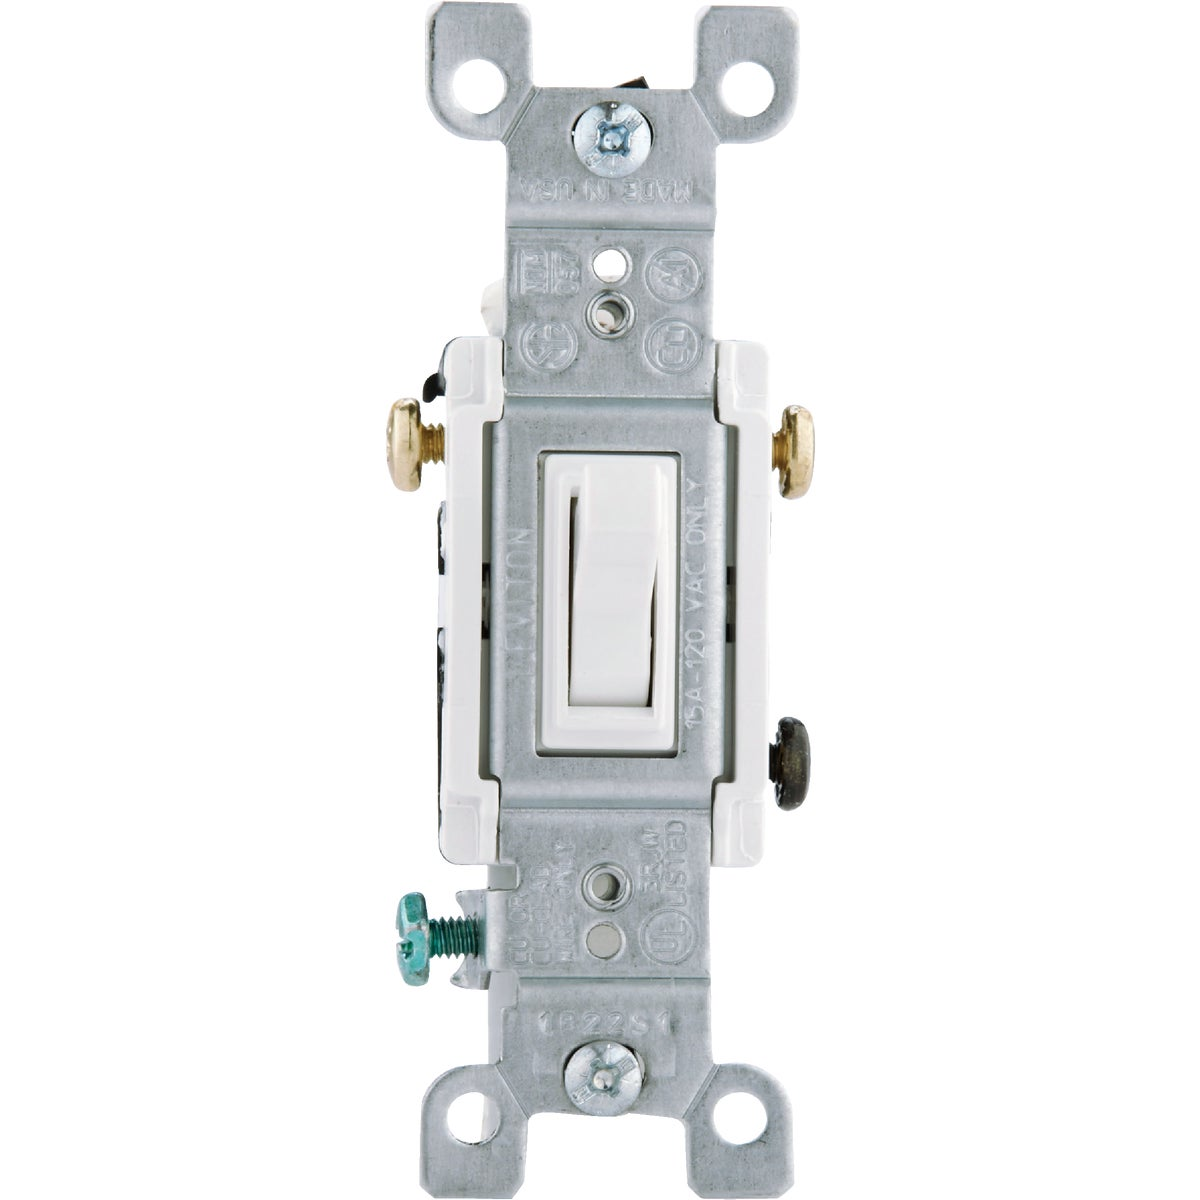 WHT 3-WAY GRND SWITCH - 1453-2WCP by Leviton Mfg Co